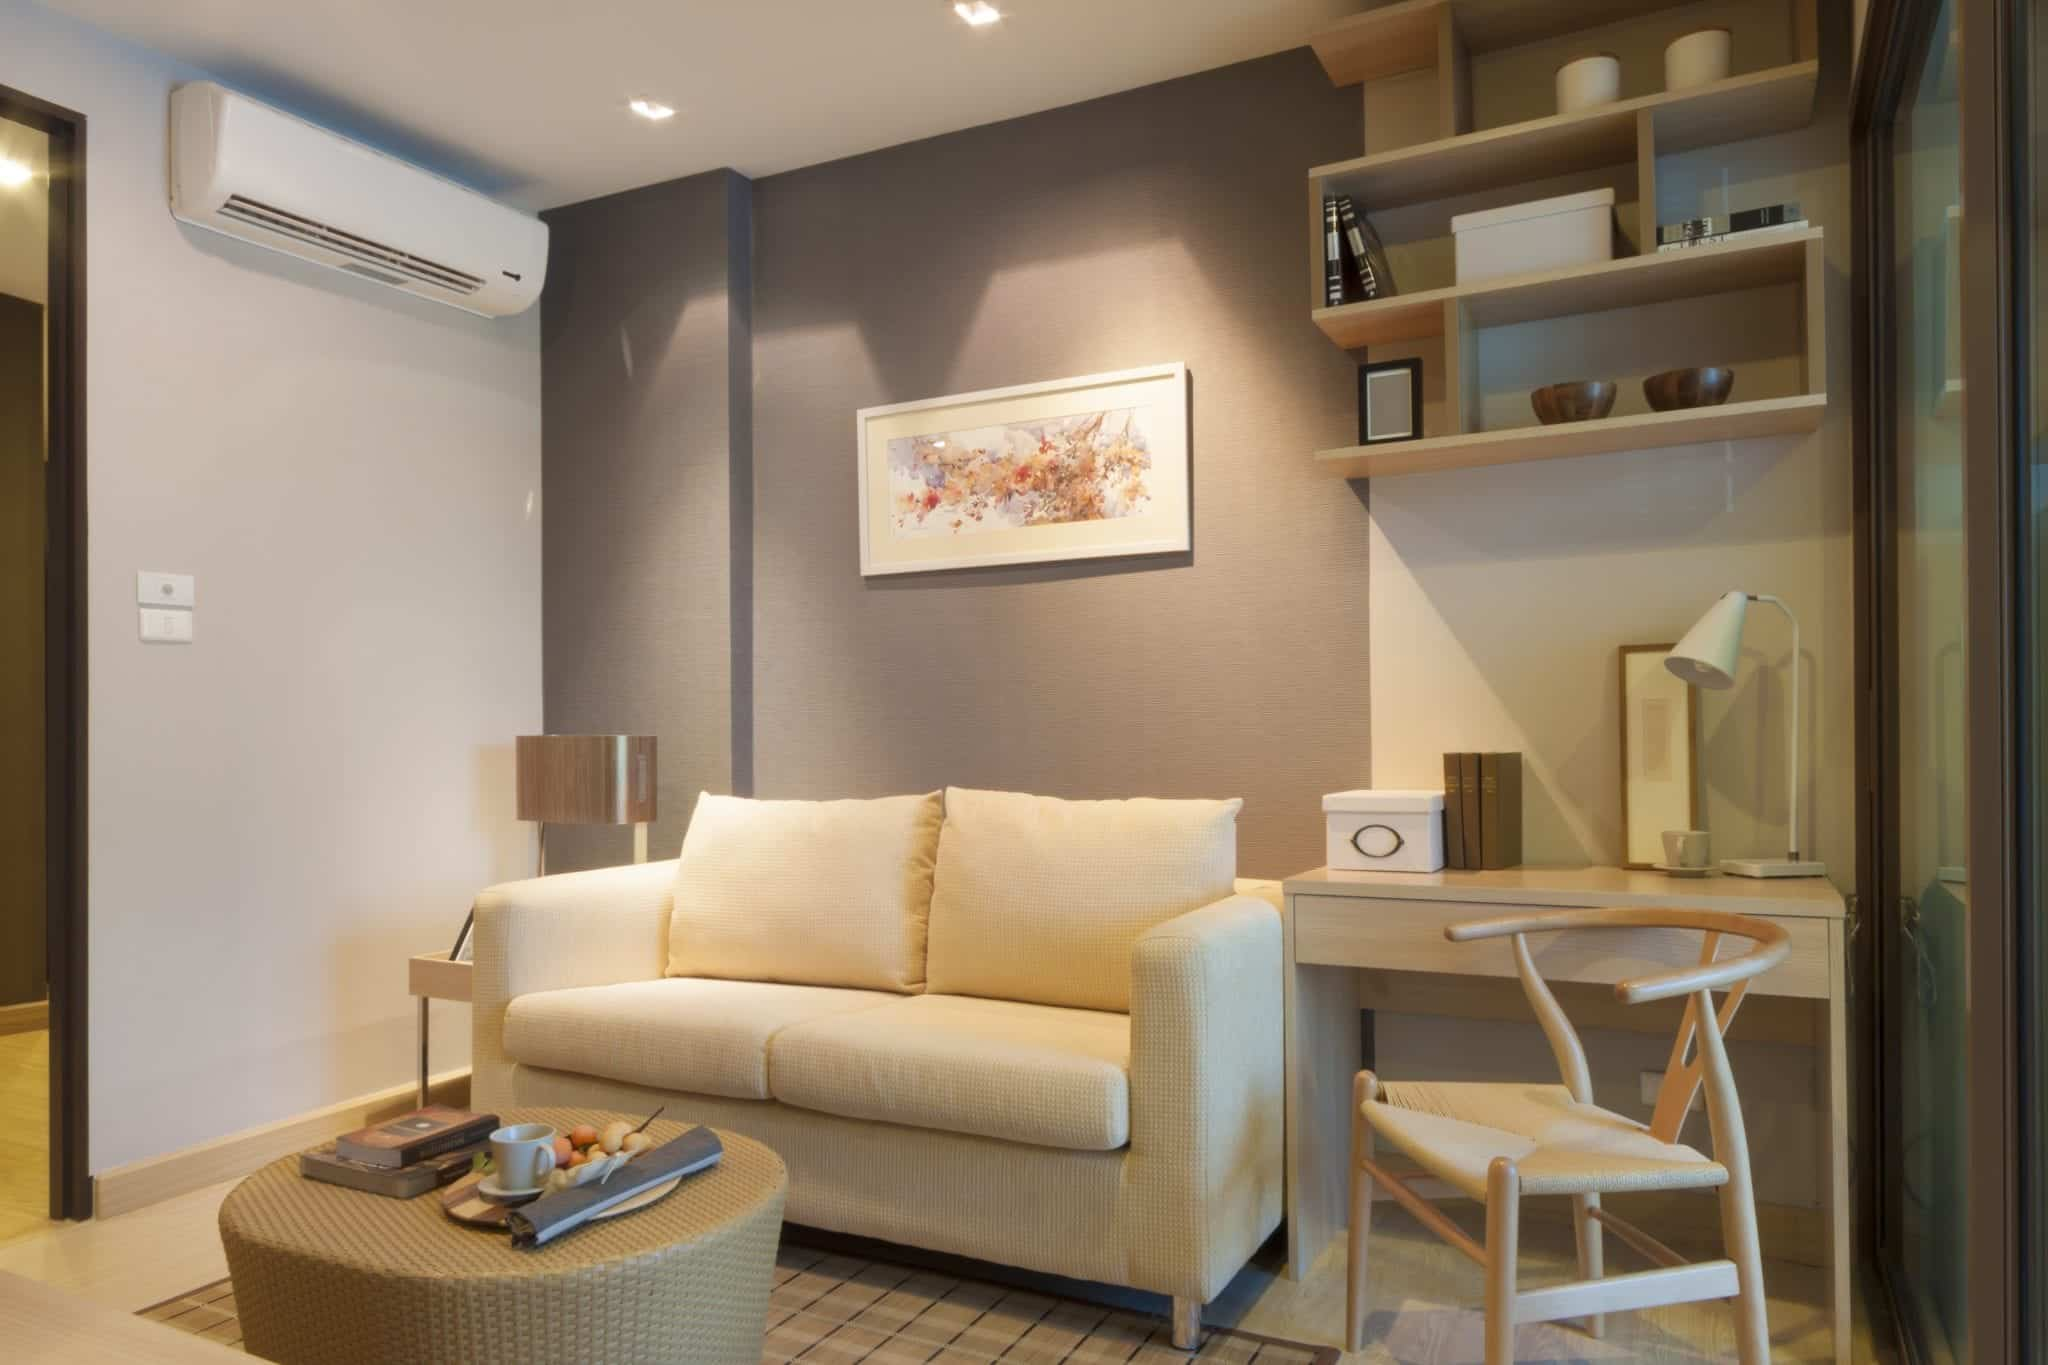 Single split air conditioner in residential living room with a beige interior design